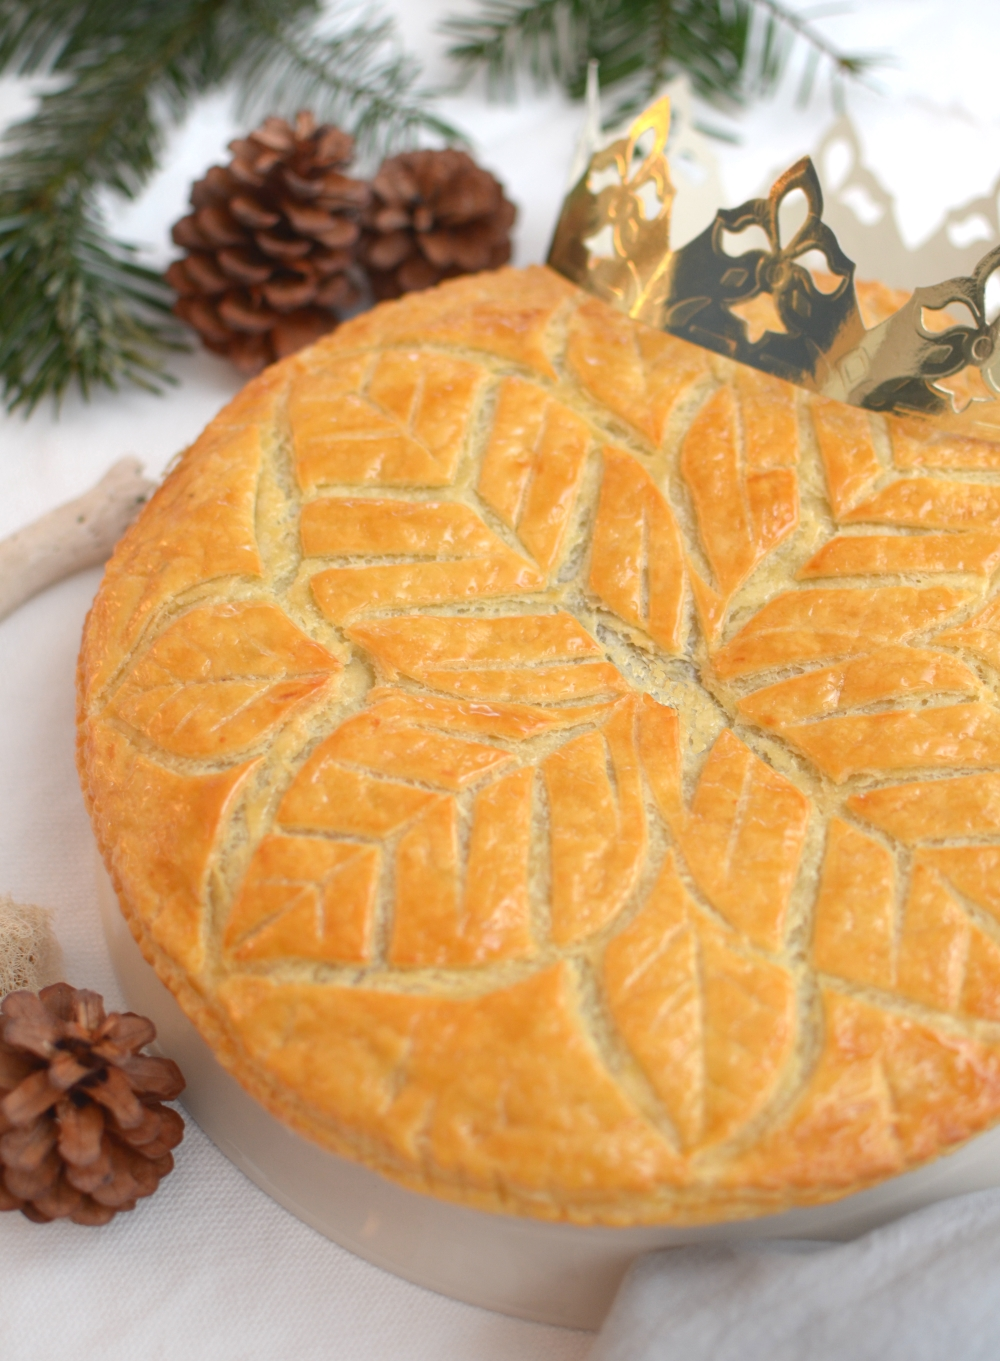 Galette des rois or french epiphany cake gluten free chocolate quinoa - Galette des rois date 2017 ...